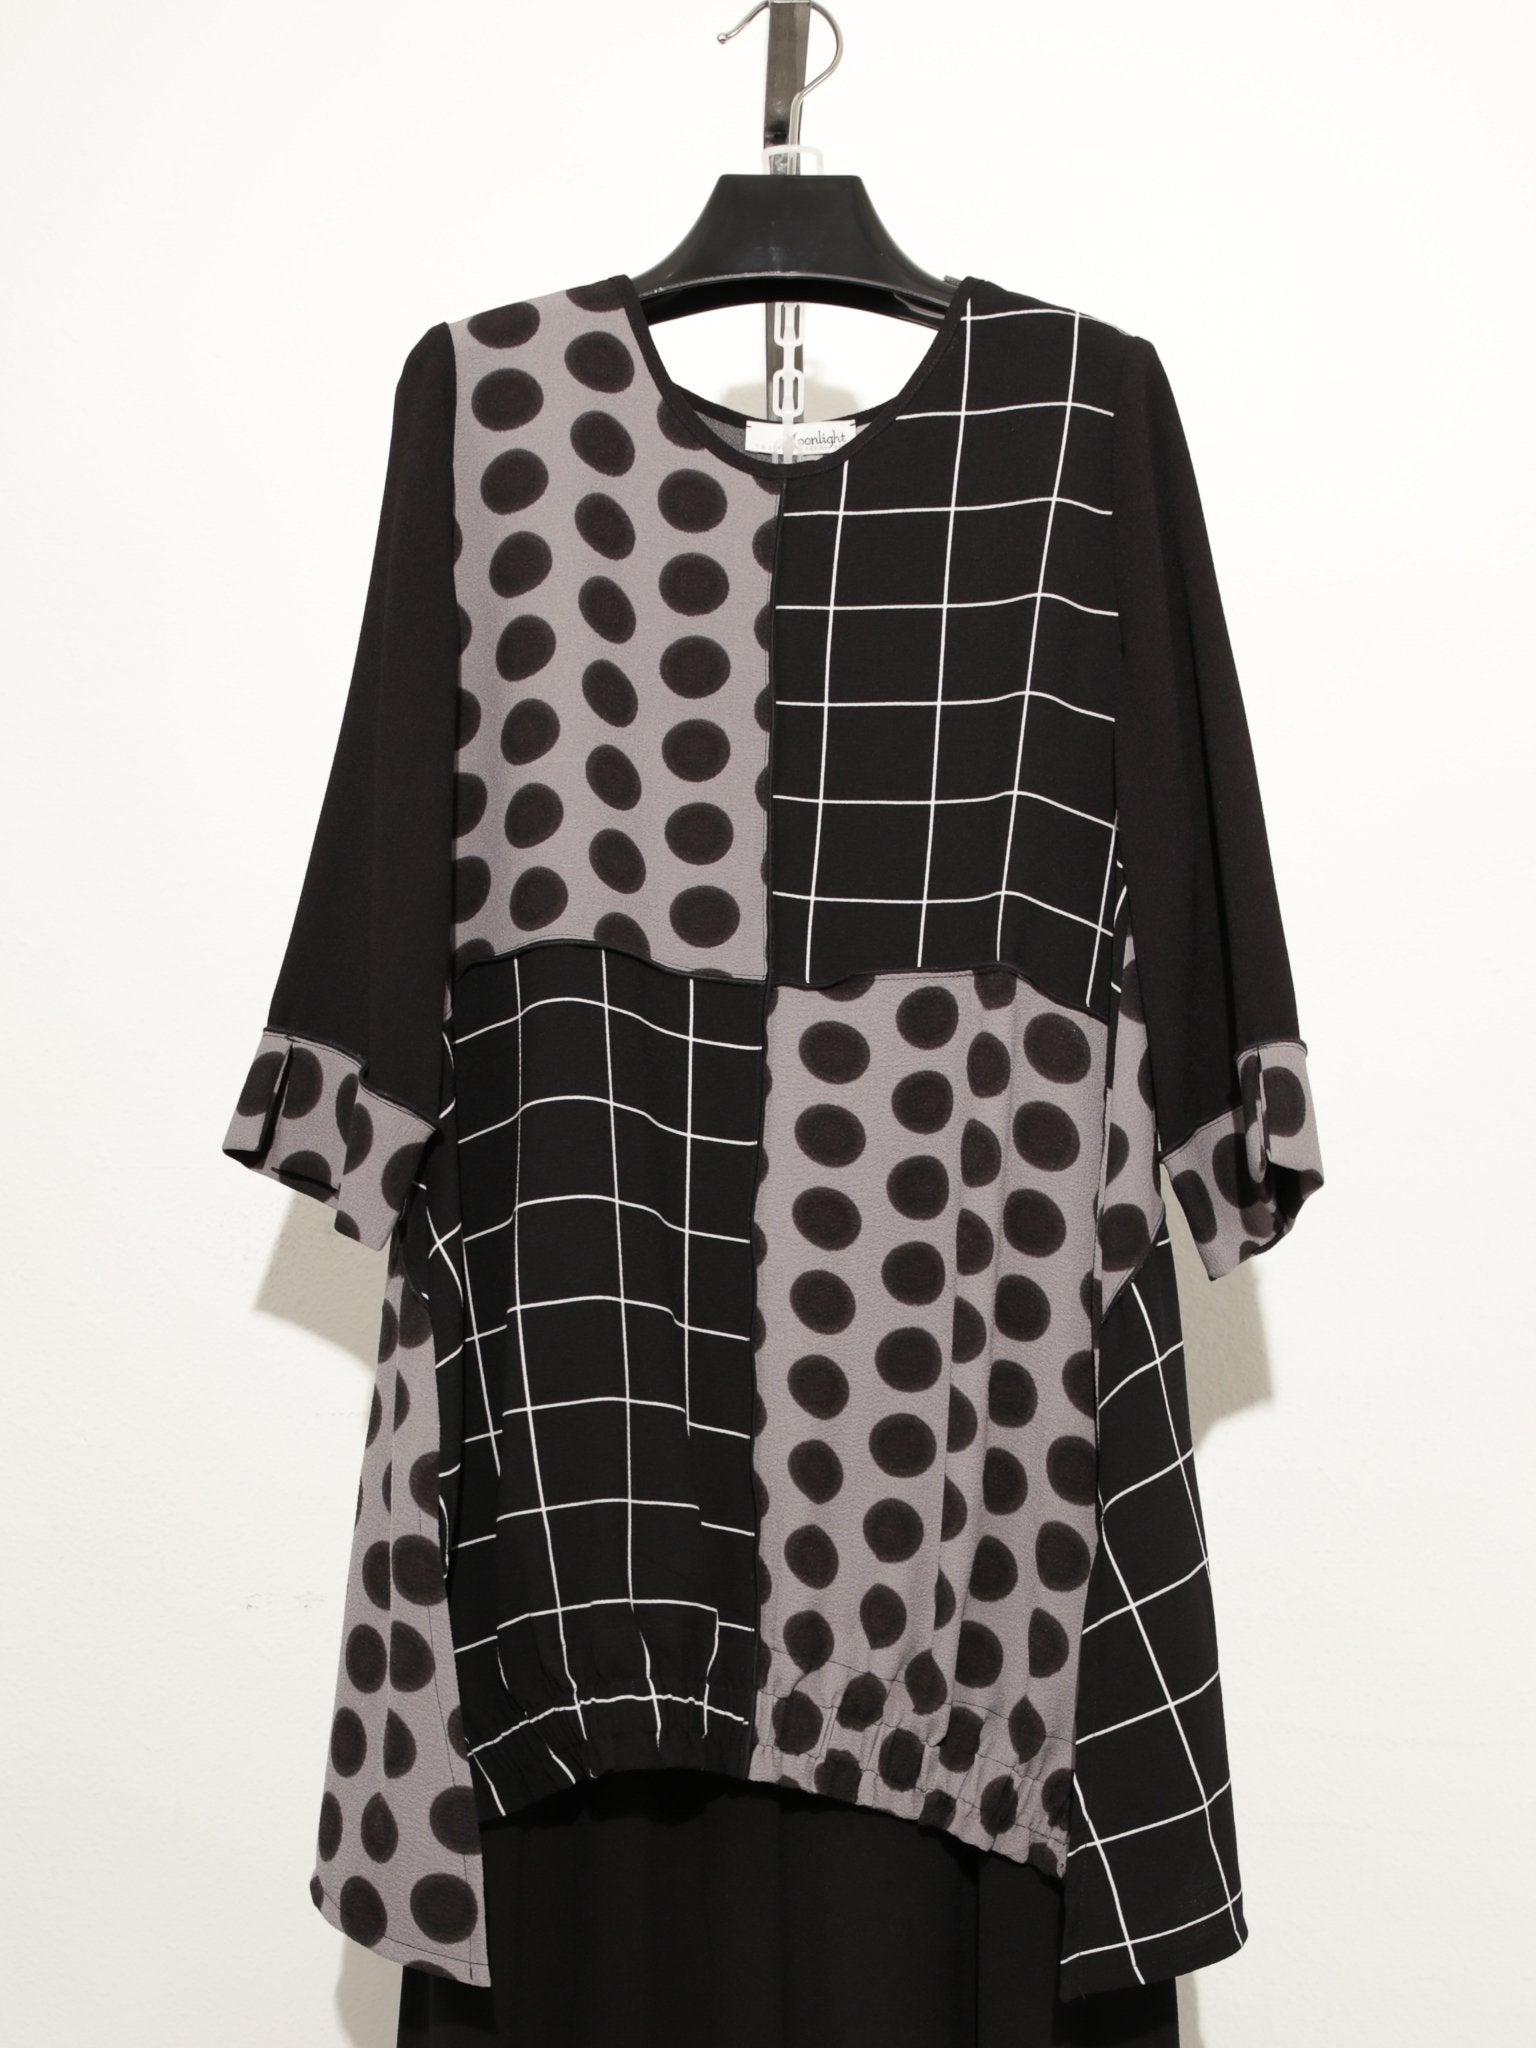 MOONLIGHT BLACK POLKA DOT TUNIC TOP 2926